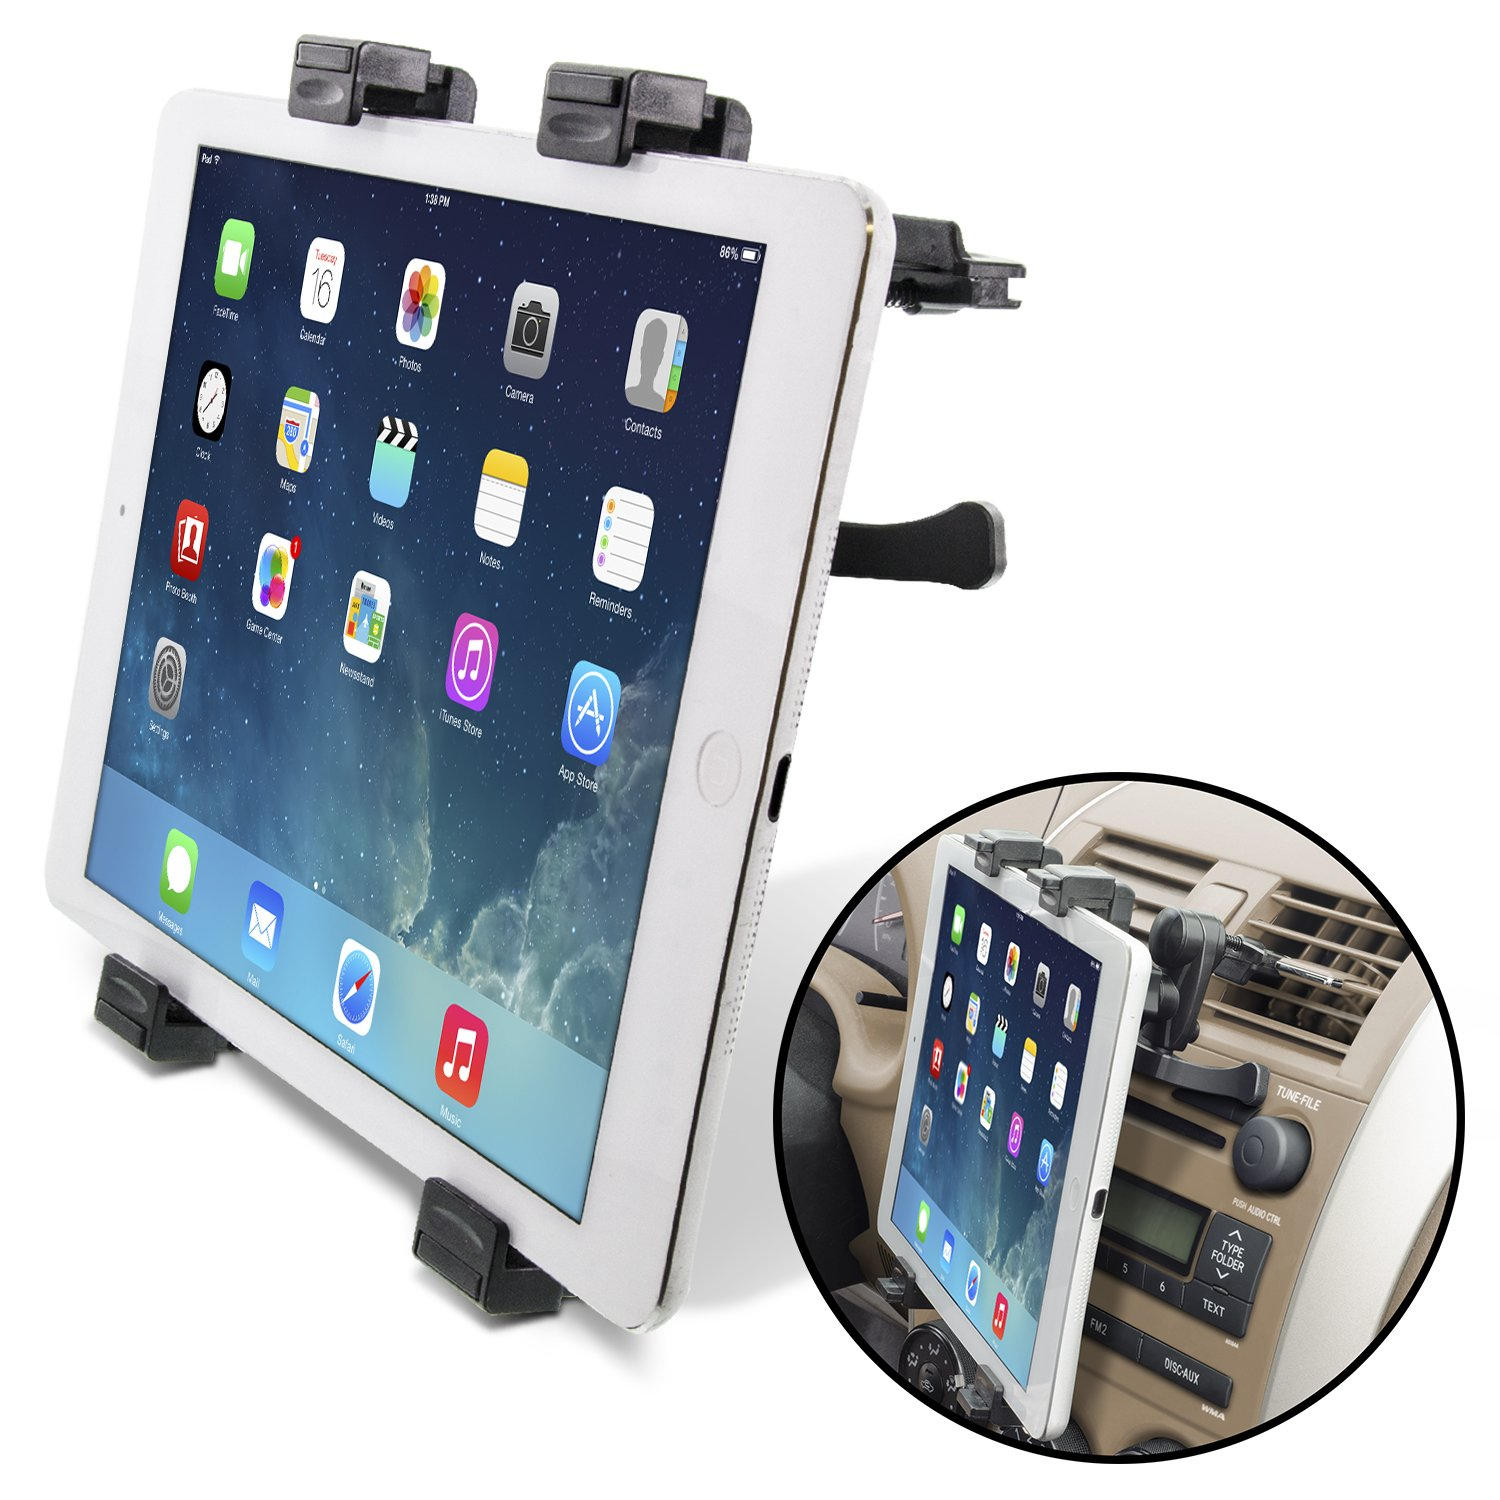 Okra Universal Tablet Air Vent Car Mount Holder with 360 Rotating swivel compatible w/Apple iPad, Samsung Galaxy Tab, and all Tablet Devices 5'' to 11'' (Retail Packaging)